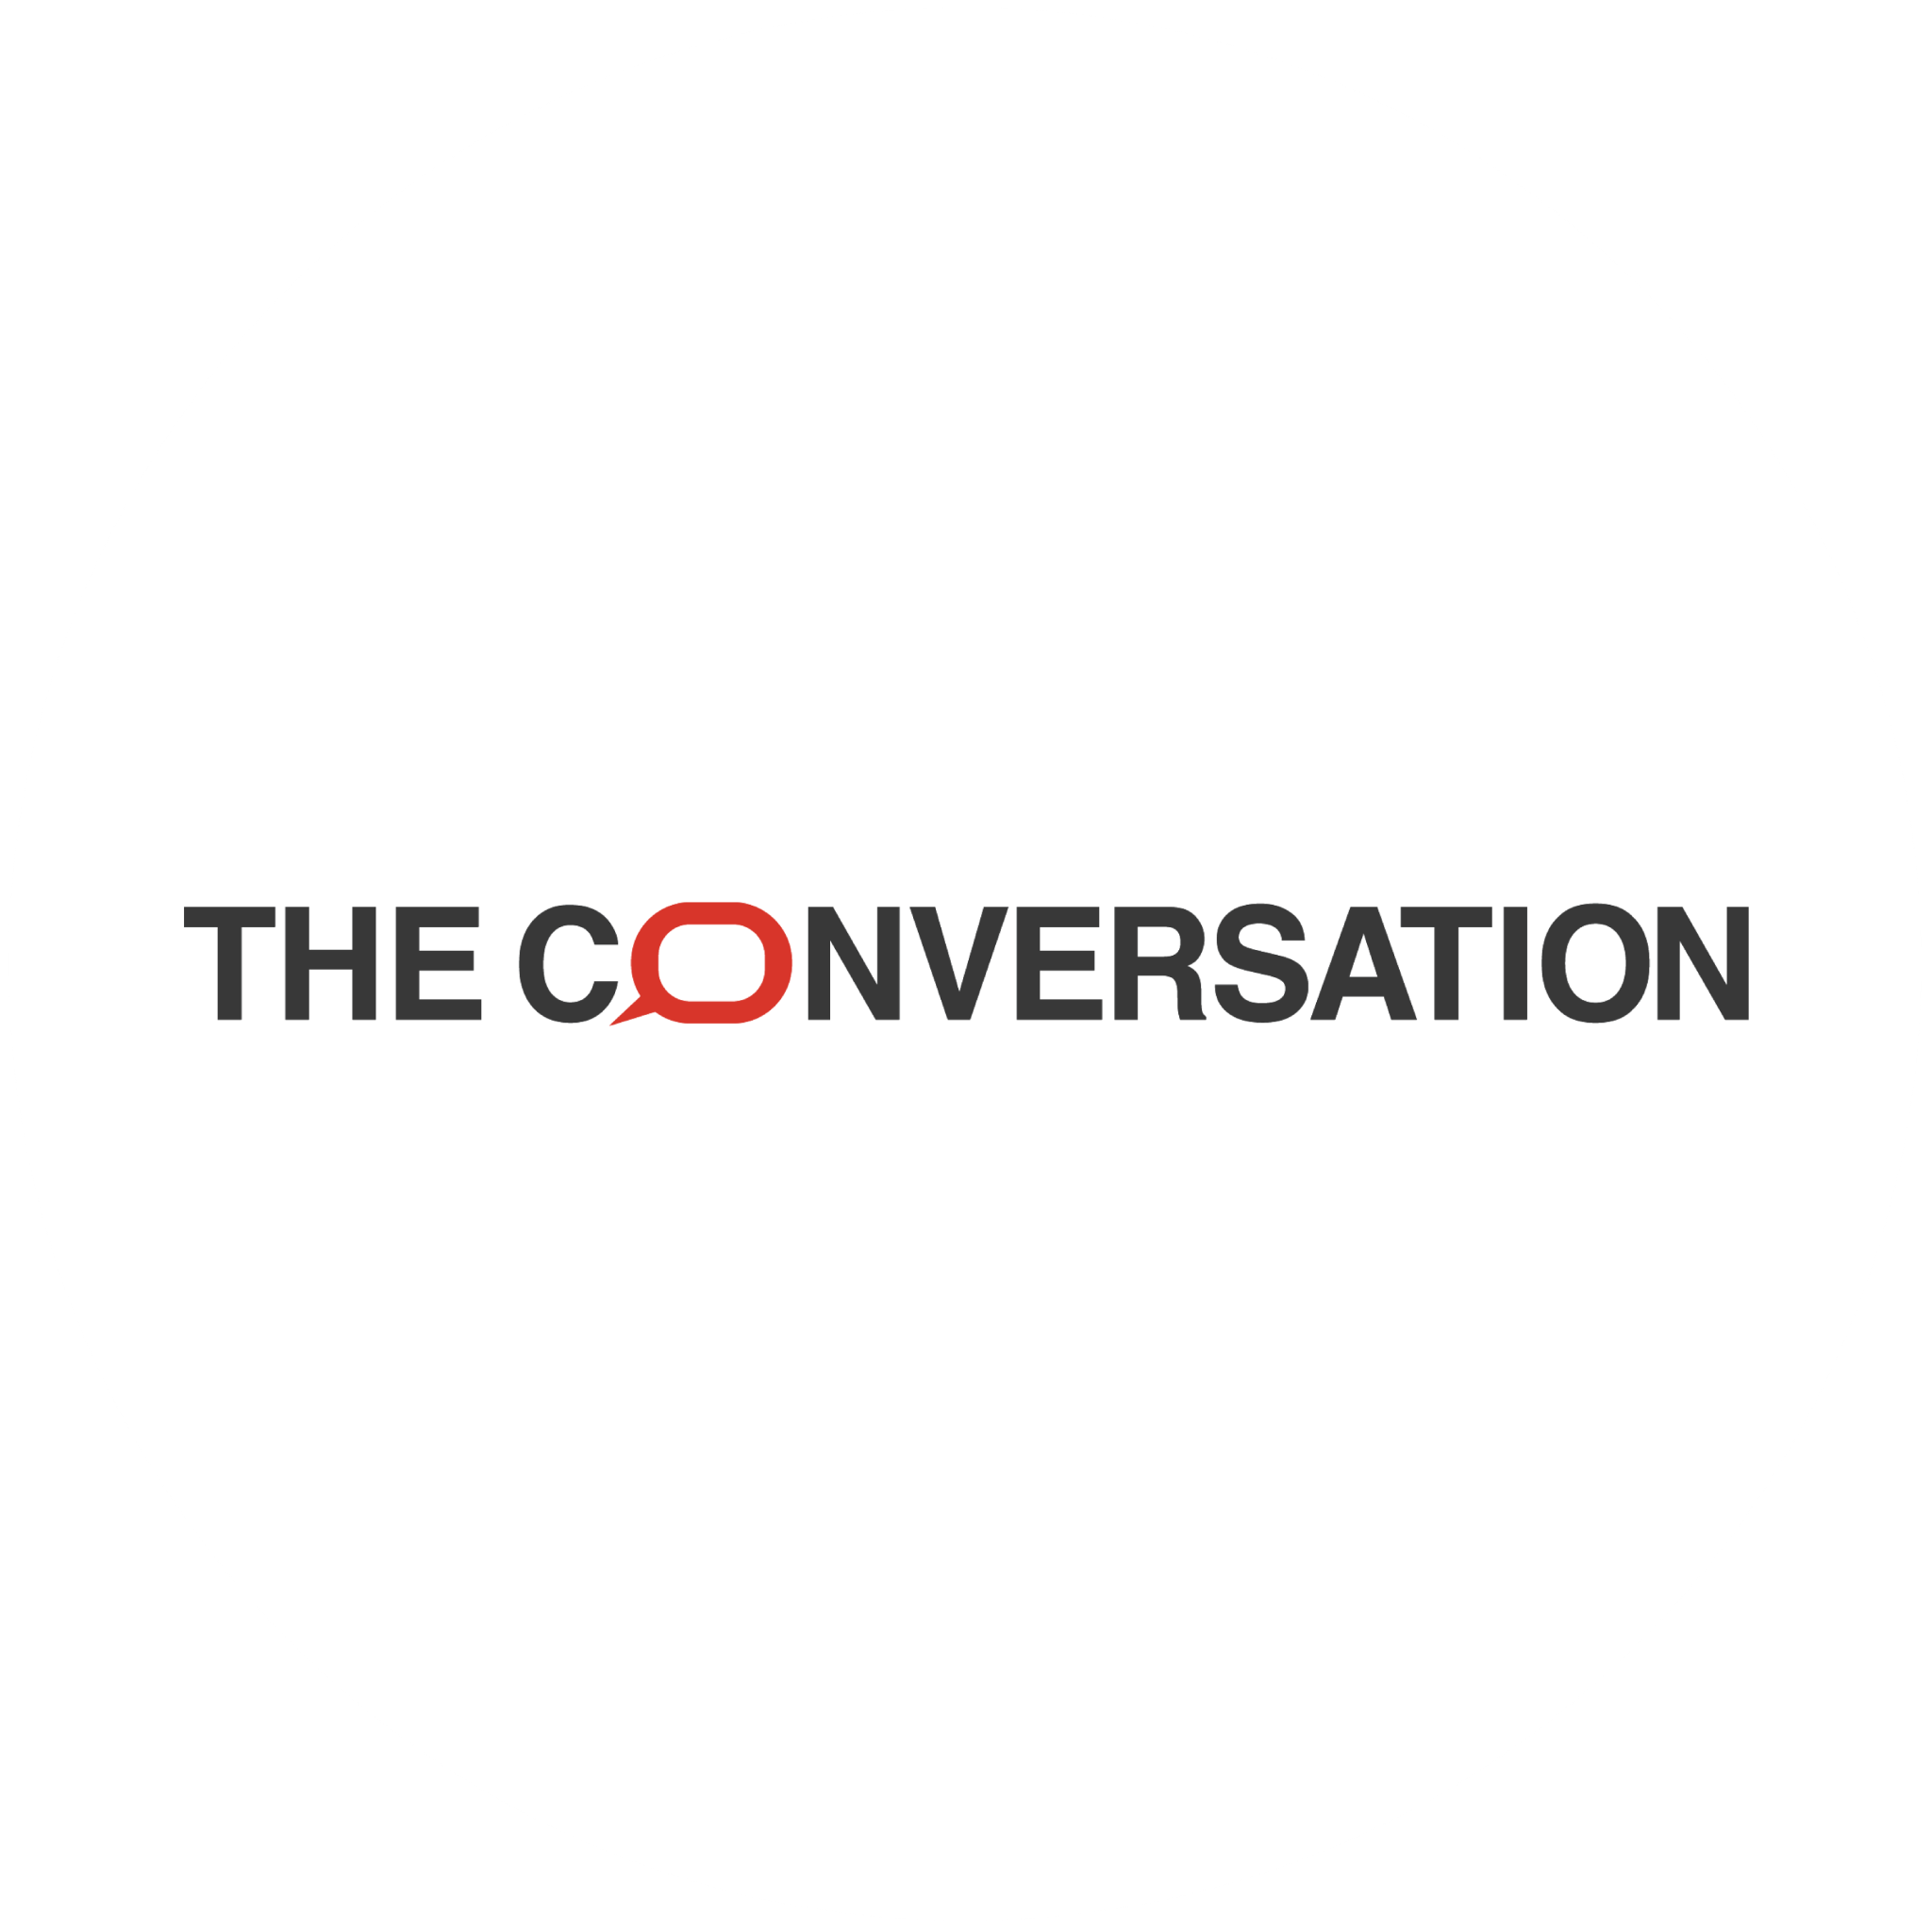 MF_The Conversation